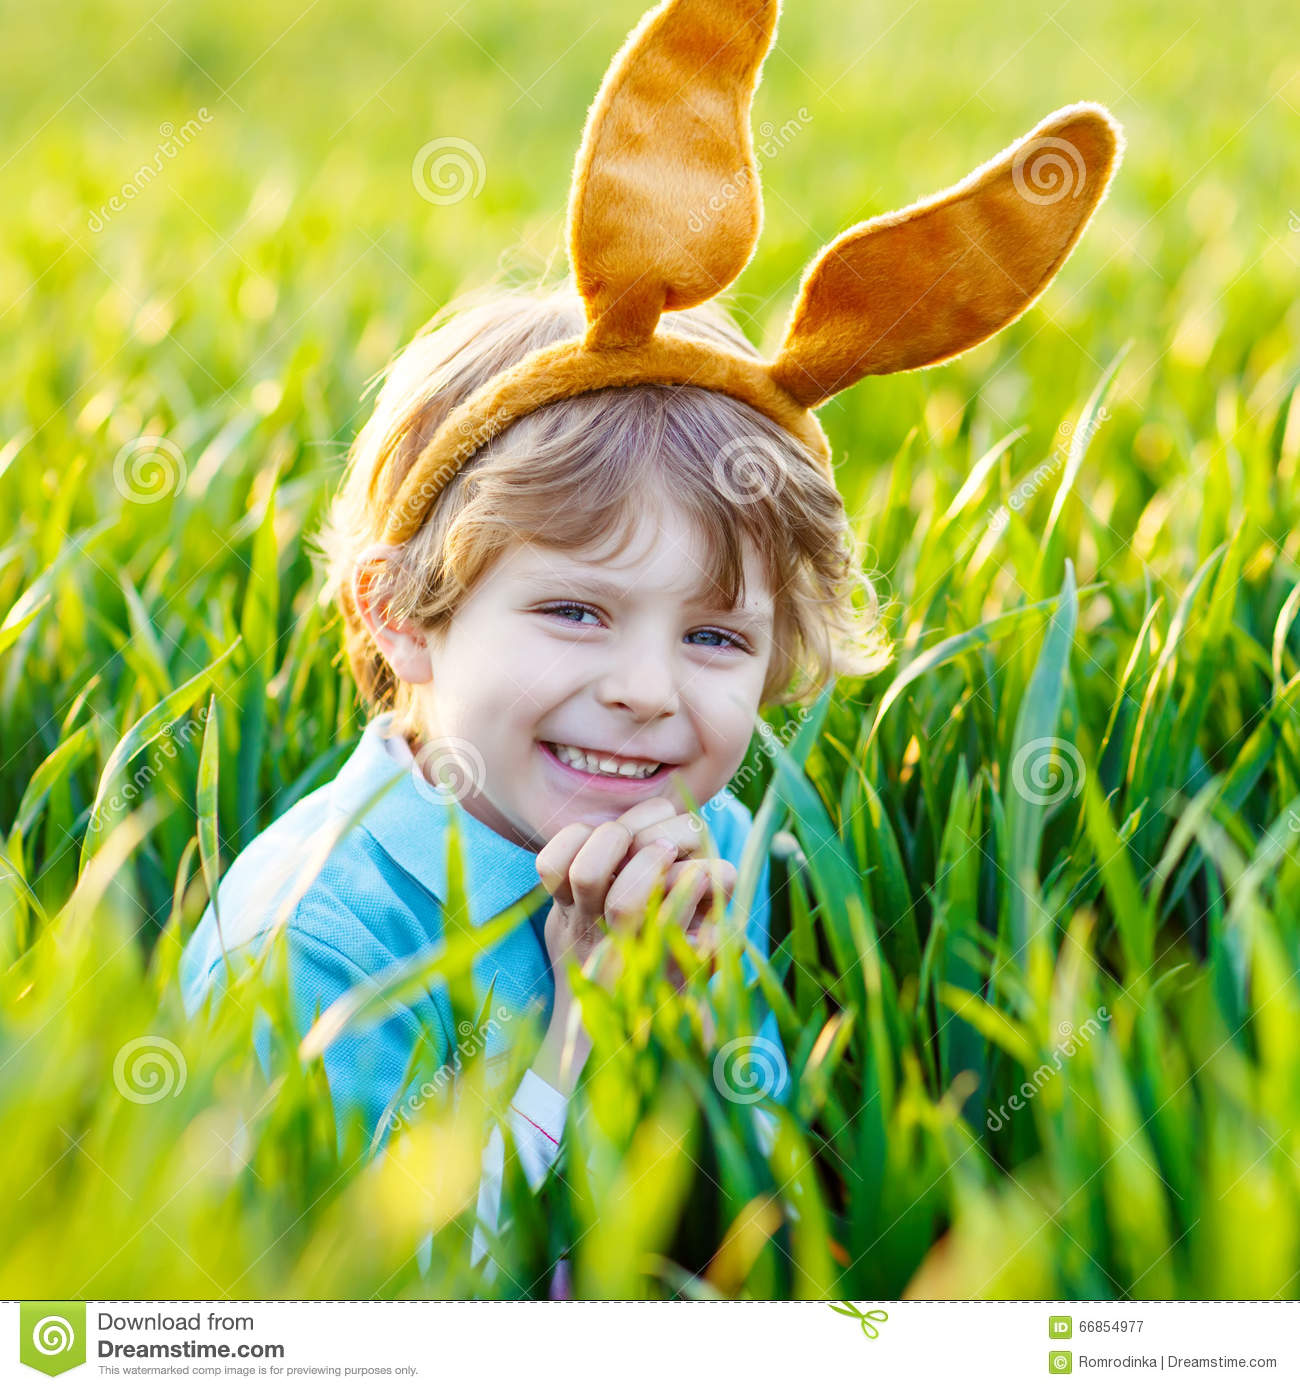 Easter Bunny Childhood Royalty Free Stock Image